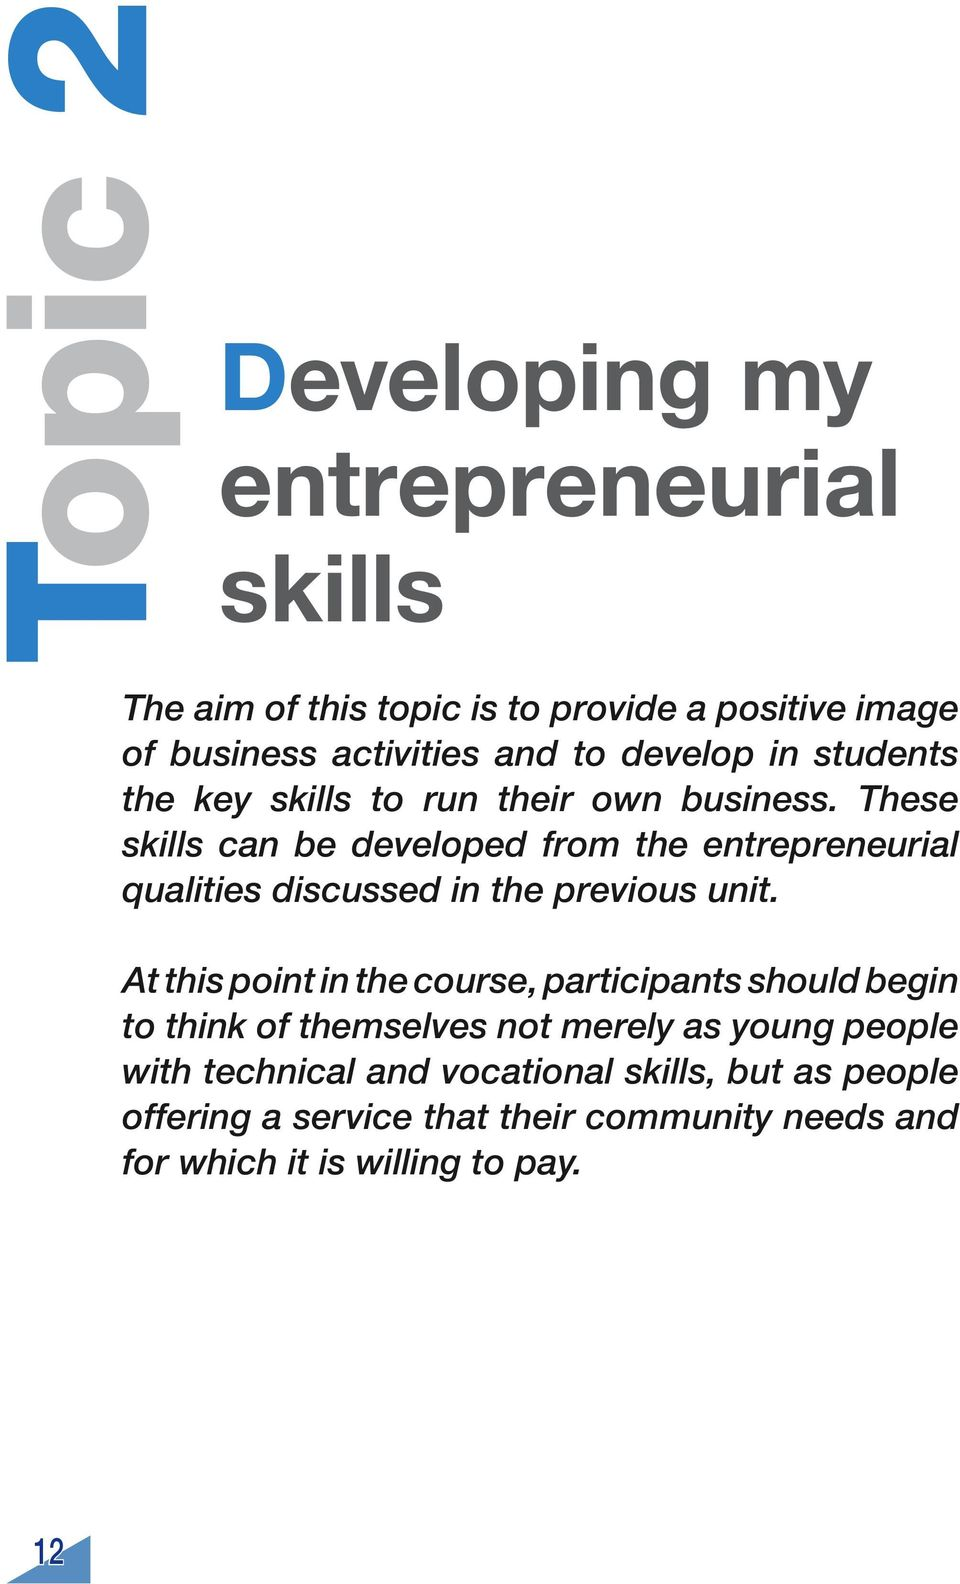 These skills can be developed from the entrepreneurial qualities discussed in the previous unit.